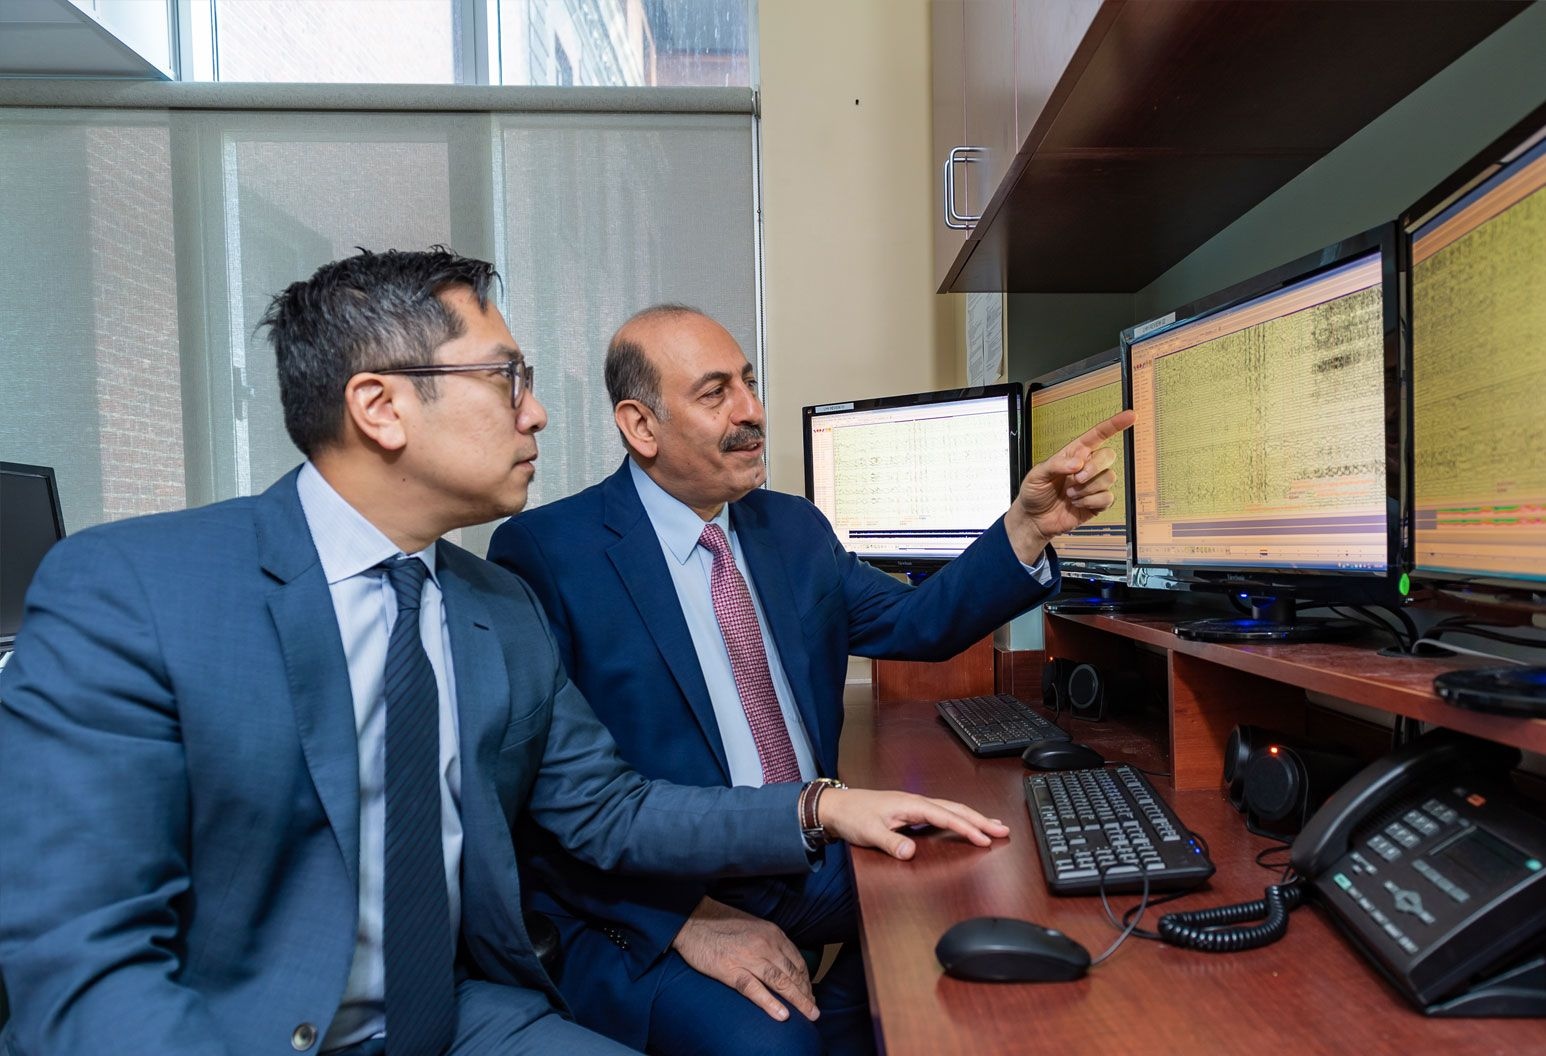 Doctors Najjar and Chong review medical records displayed on computer monitors